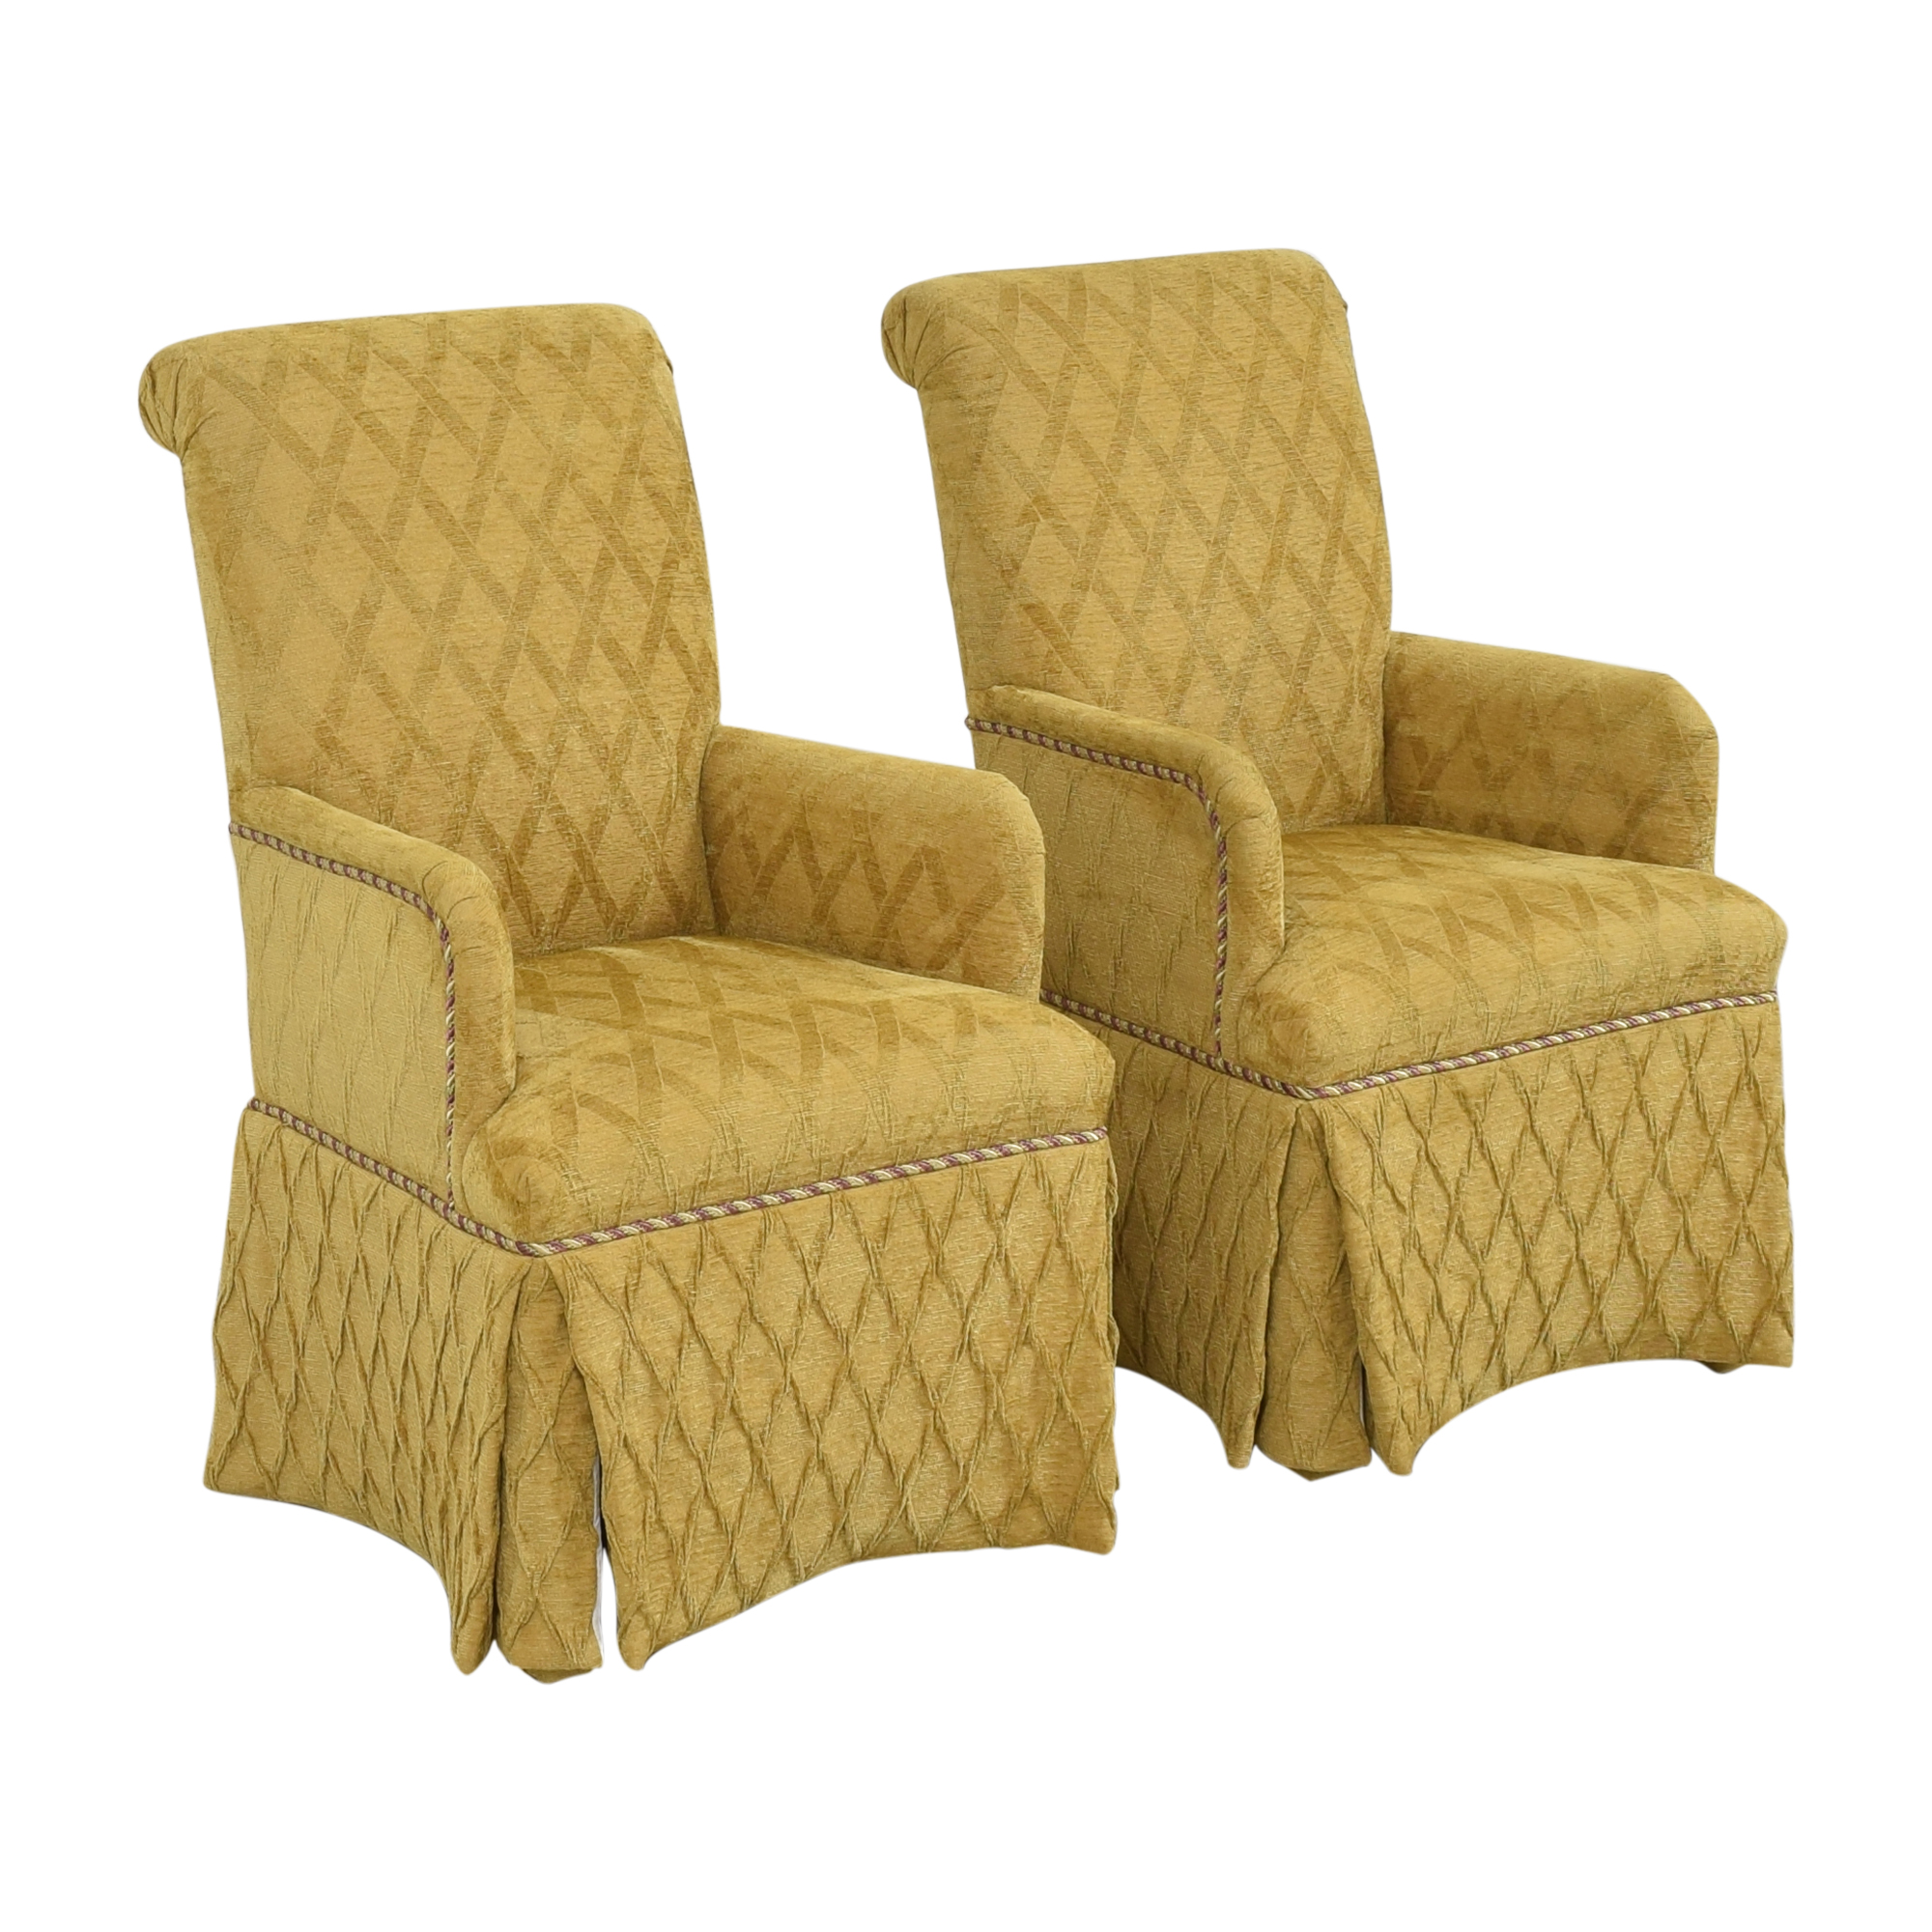 Charles Stewart Company Charles Stewart Company Skirted Dining Arm Chairs for sale